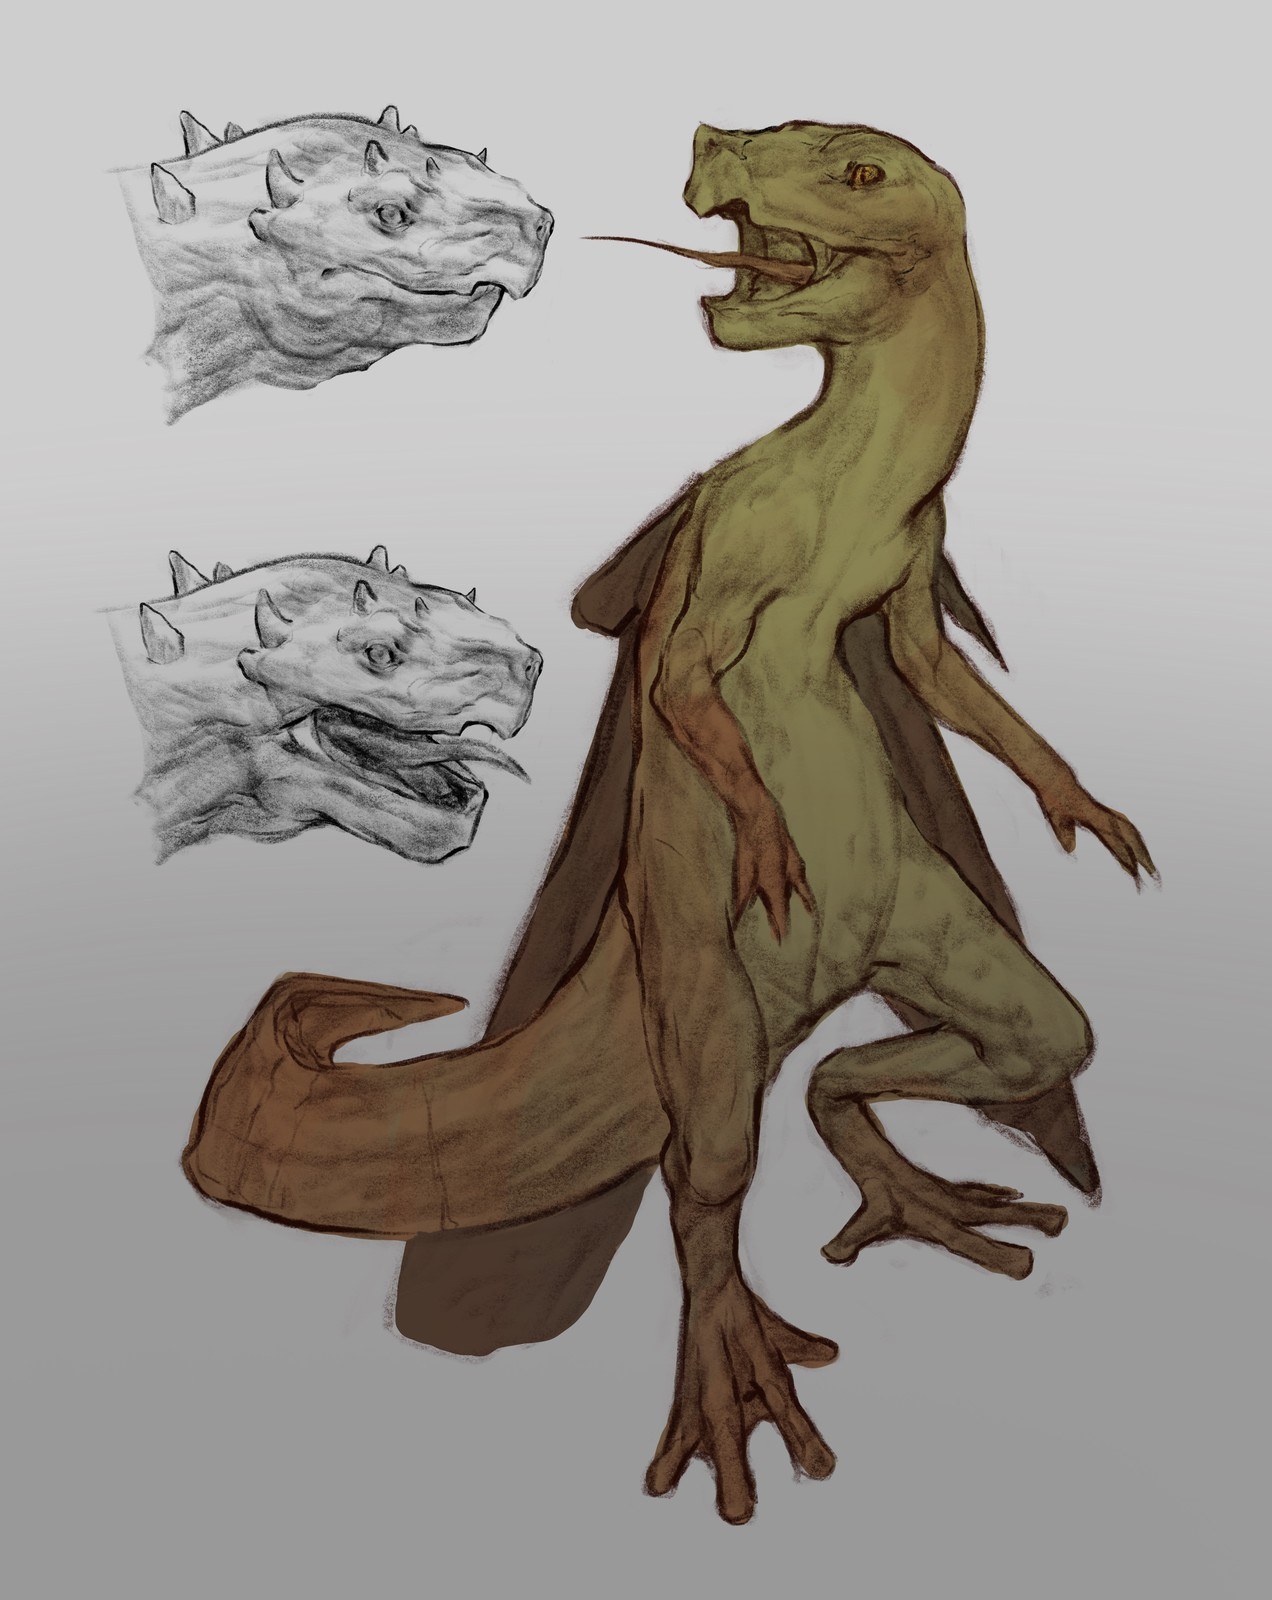 Creatuanary Day 1: Swamp Dragon